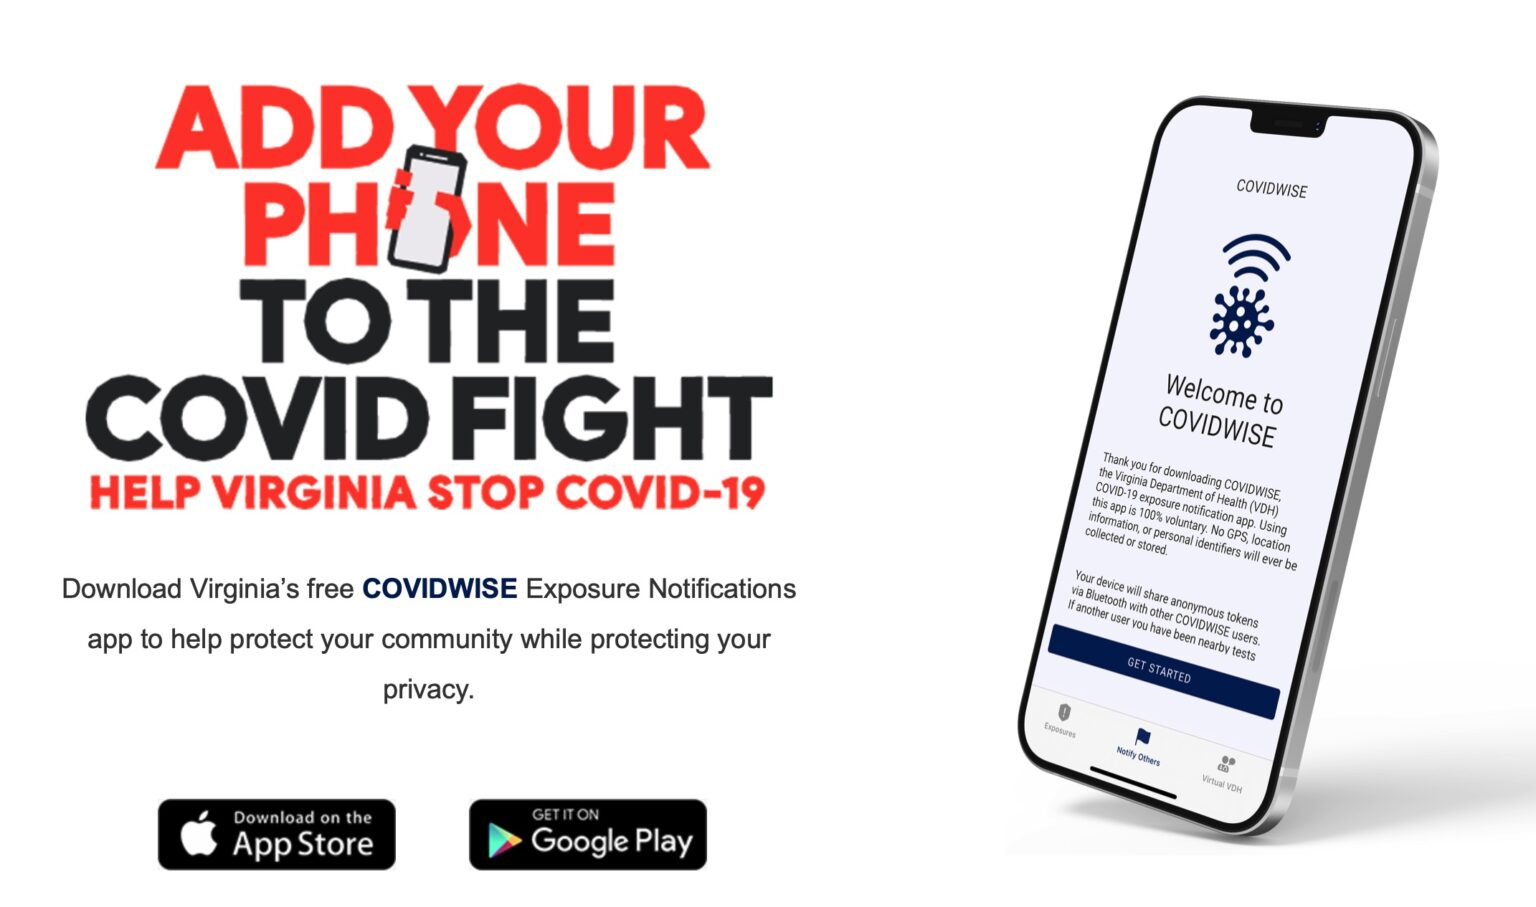 Virginia's COVIDWISE contact-tracing app uses the Exposure Notifications API developed by Apple and Google.